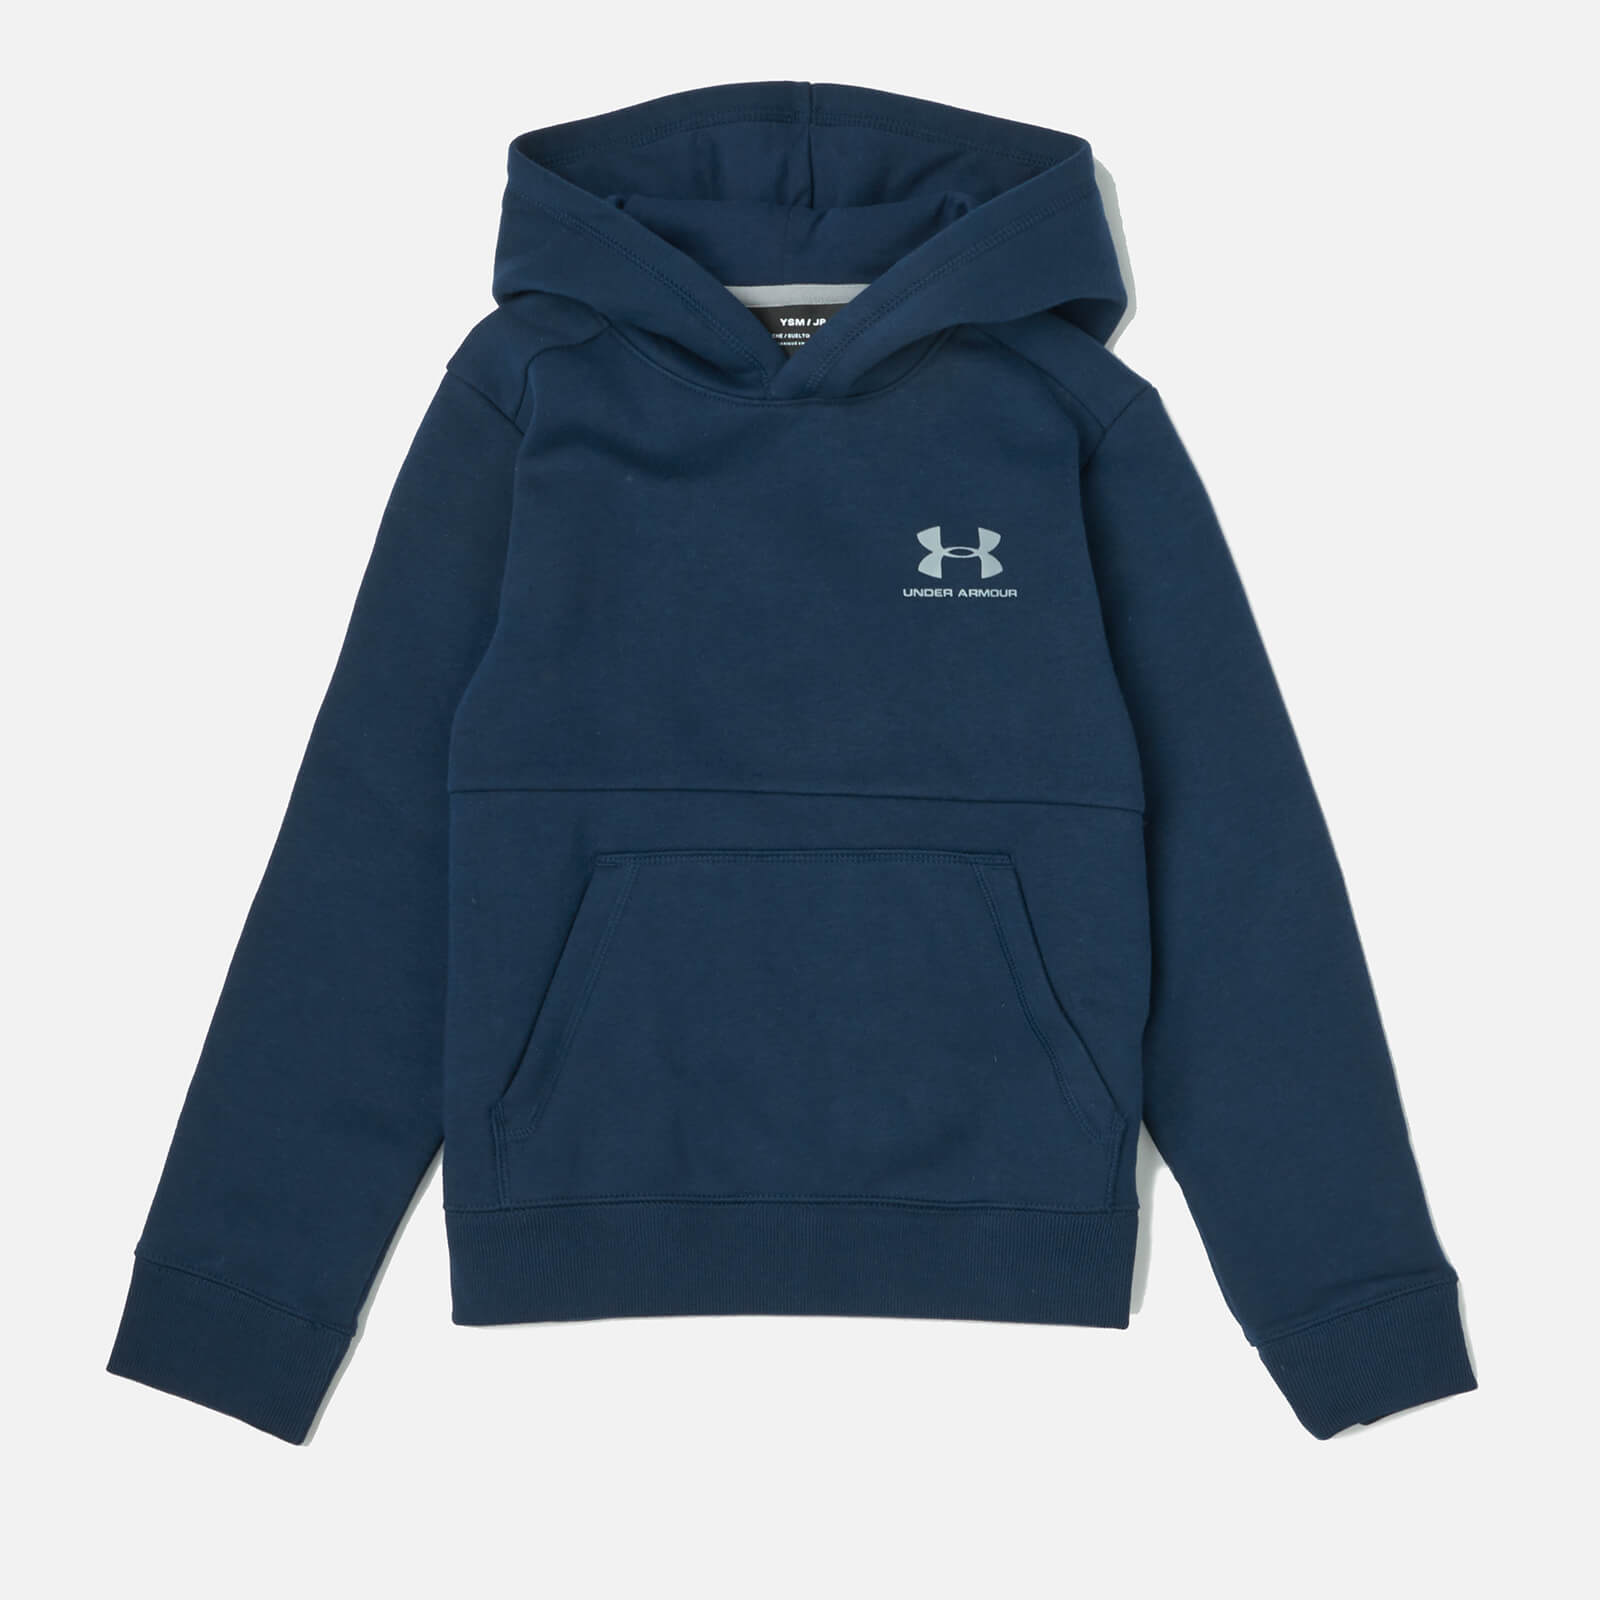 948012af26 Under Armour Boys' Cotton Fleece Hoodie - Academy